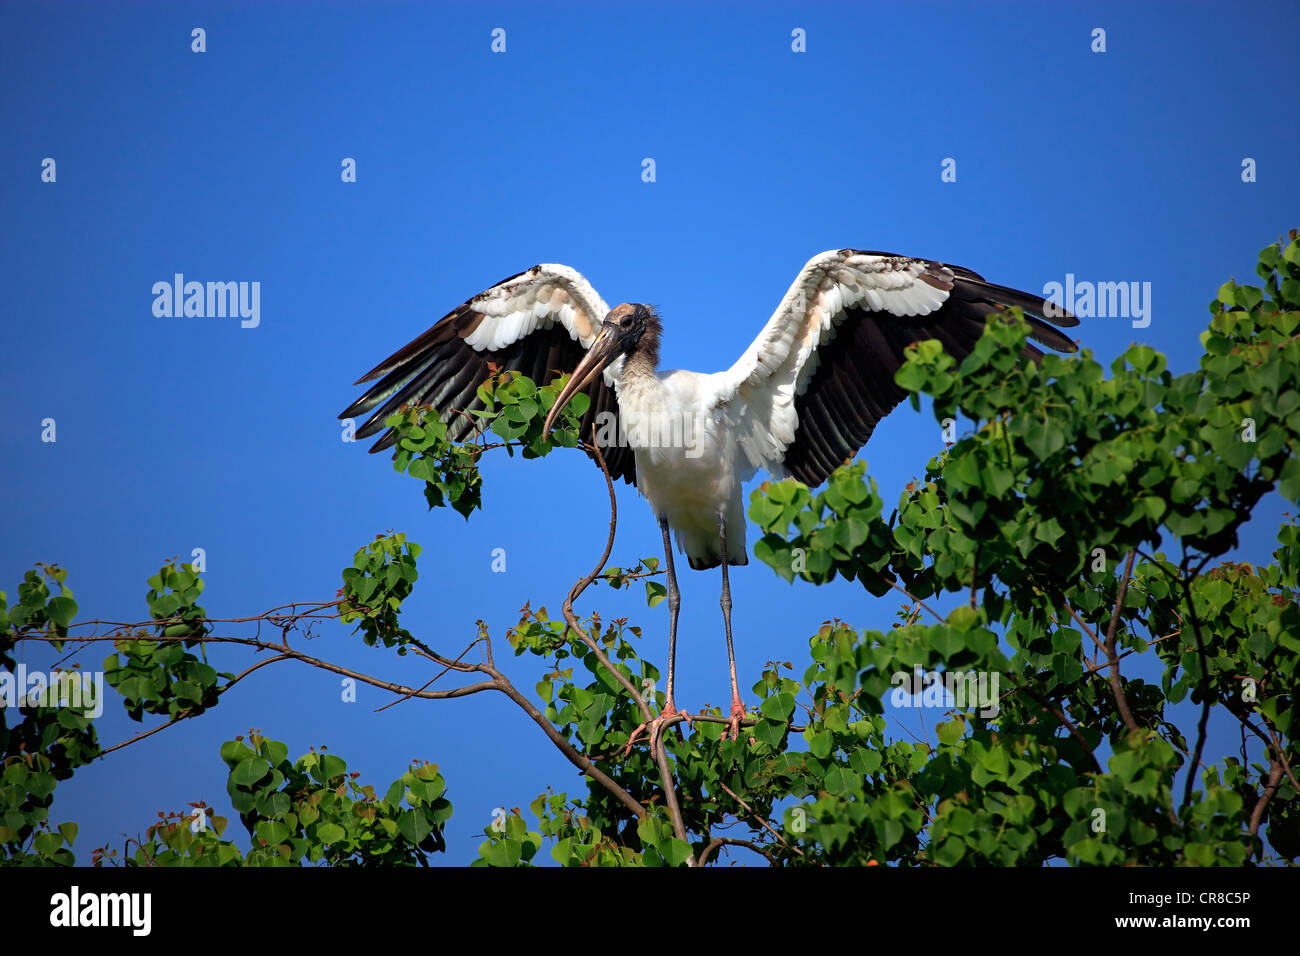 Wood stork (Mycteria americana), adult on tree, spreading wings, with nesting material, Florida, USA - Stock Image